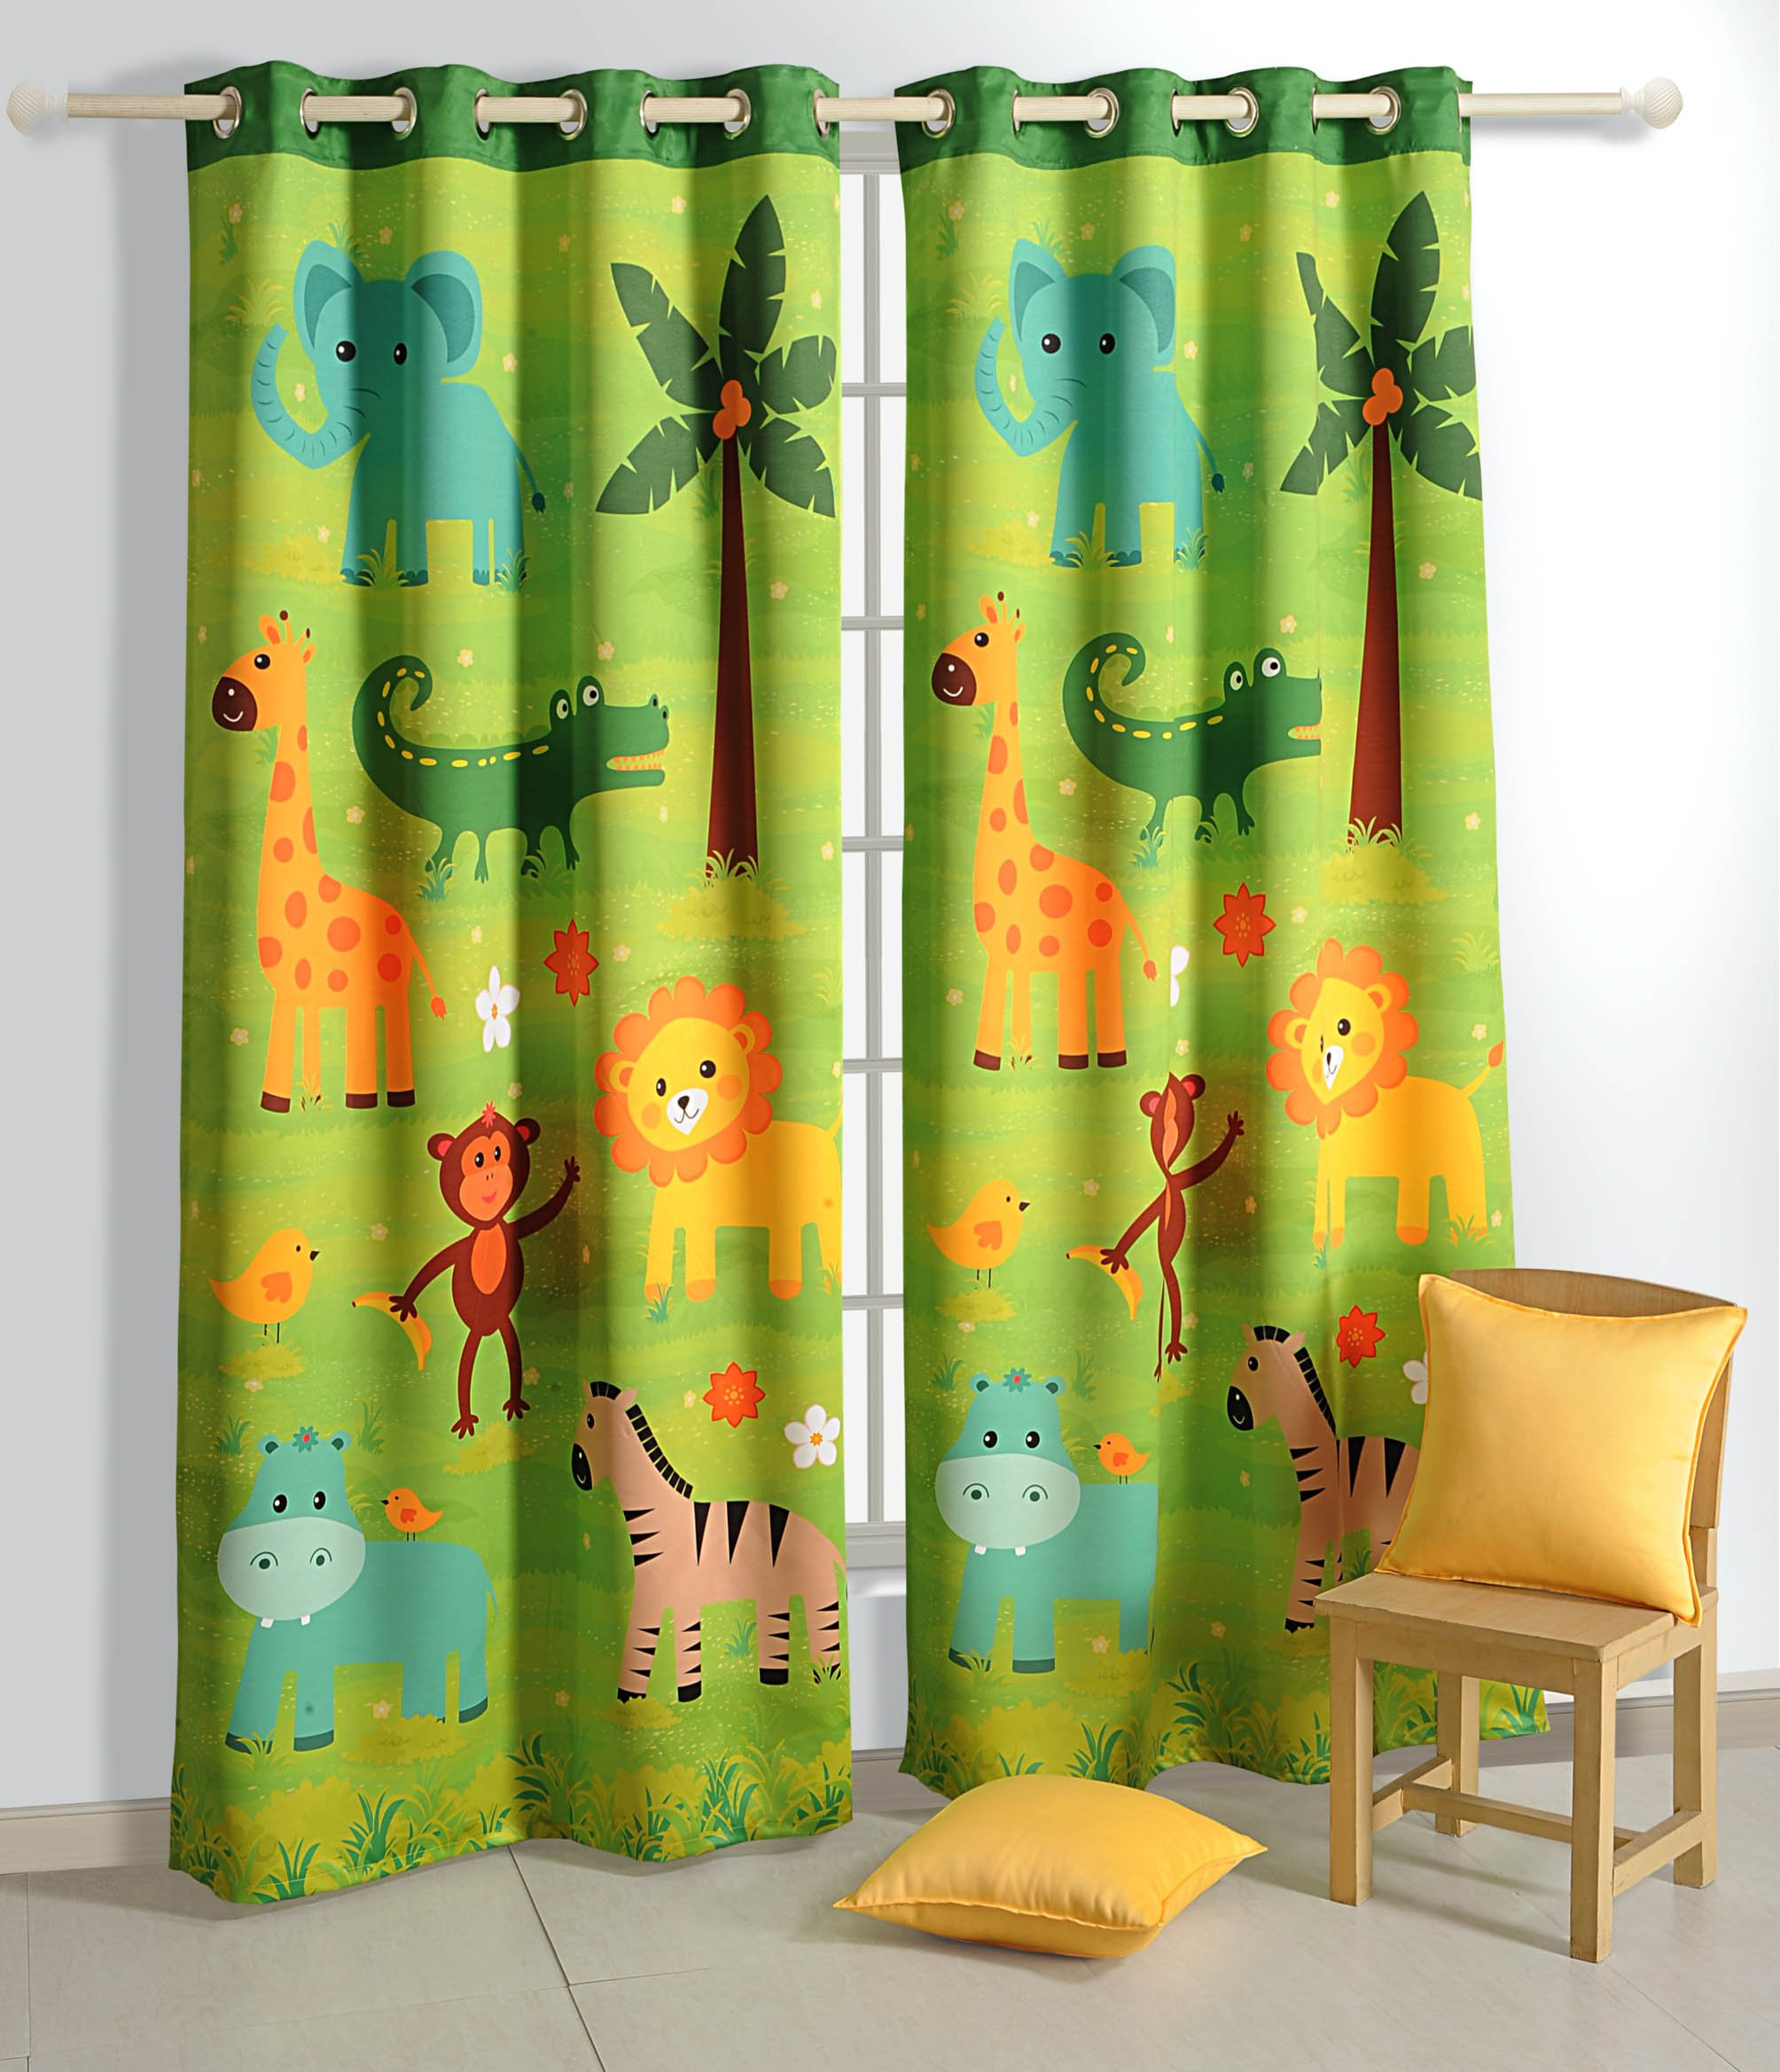 Blackout Polysatin Window Curtains for Kids Rooms -Safari Fun- Set of 2 Curtain Panels with Silver Grommets 48 Inch x 60 Inch